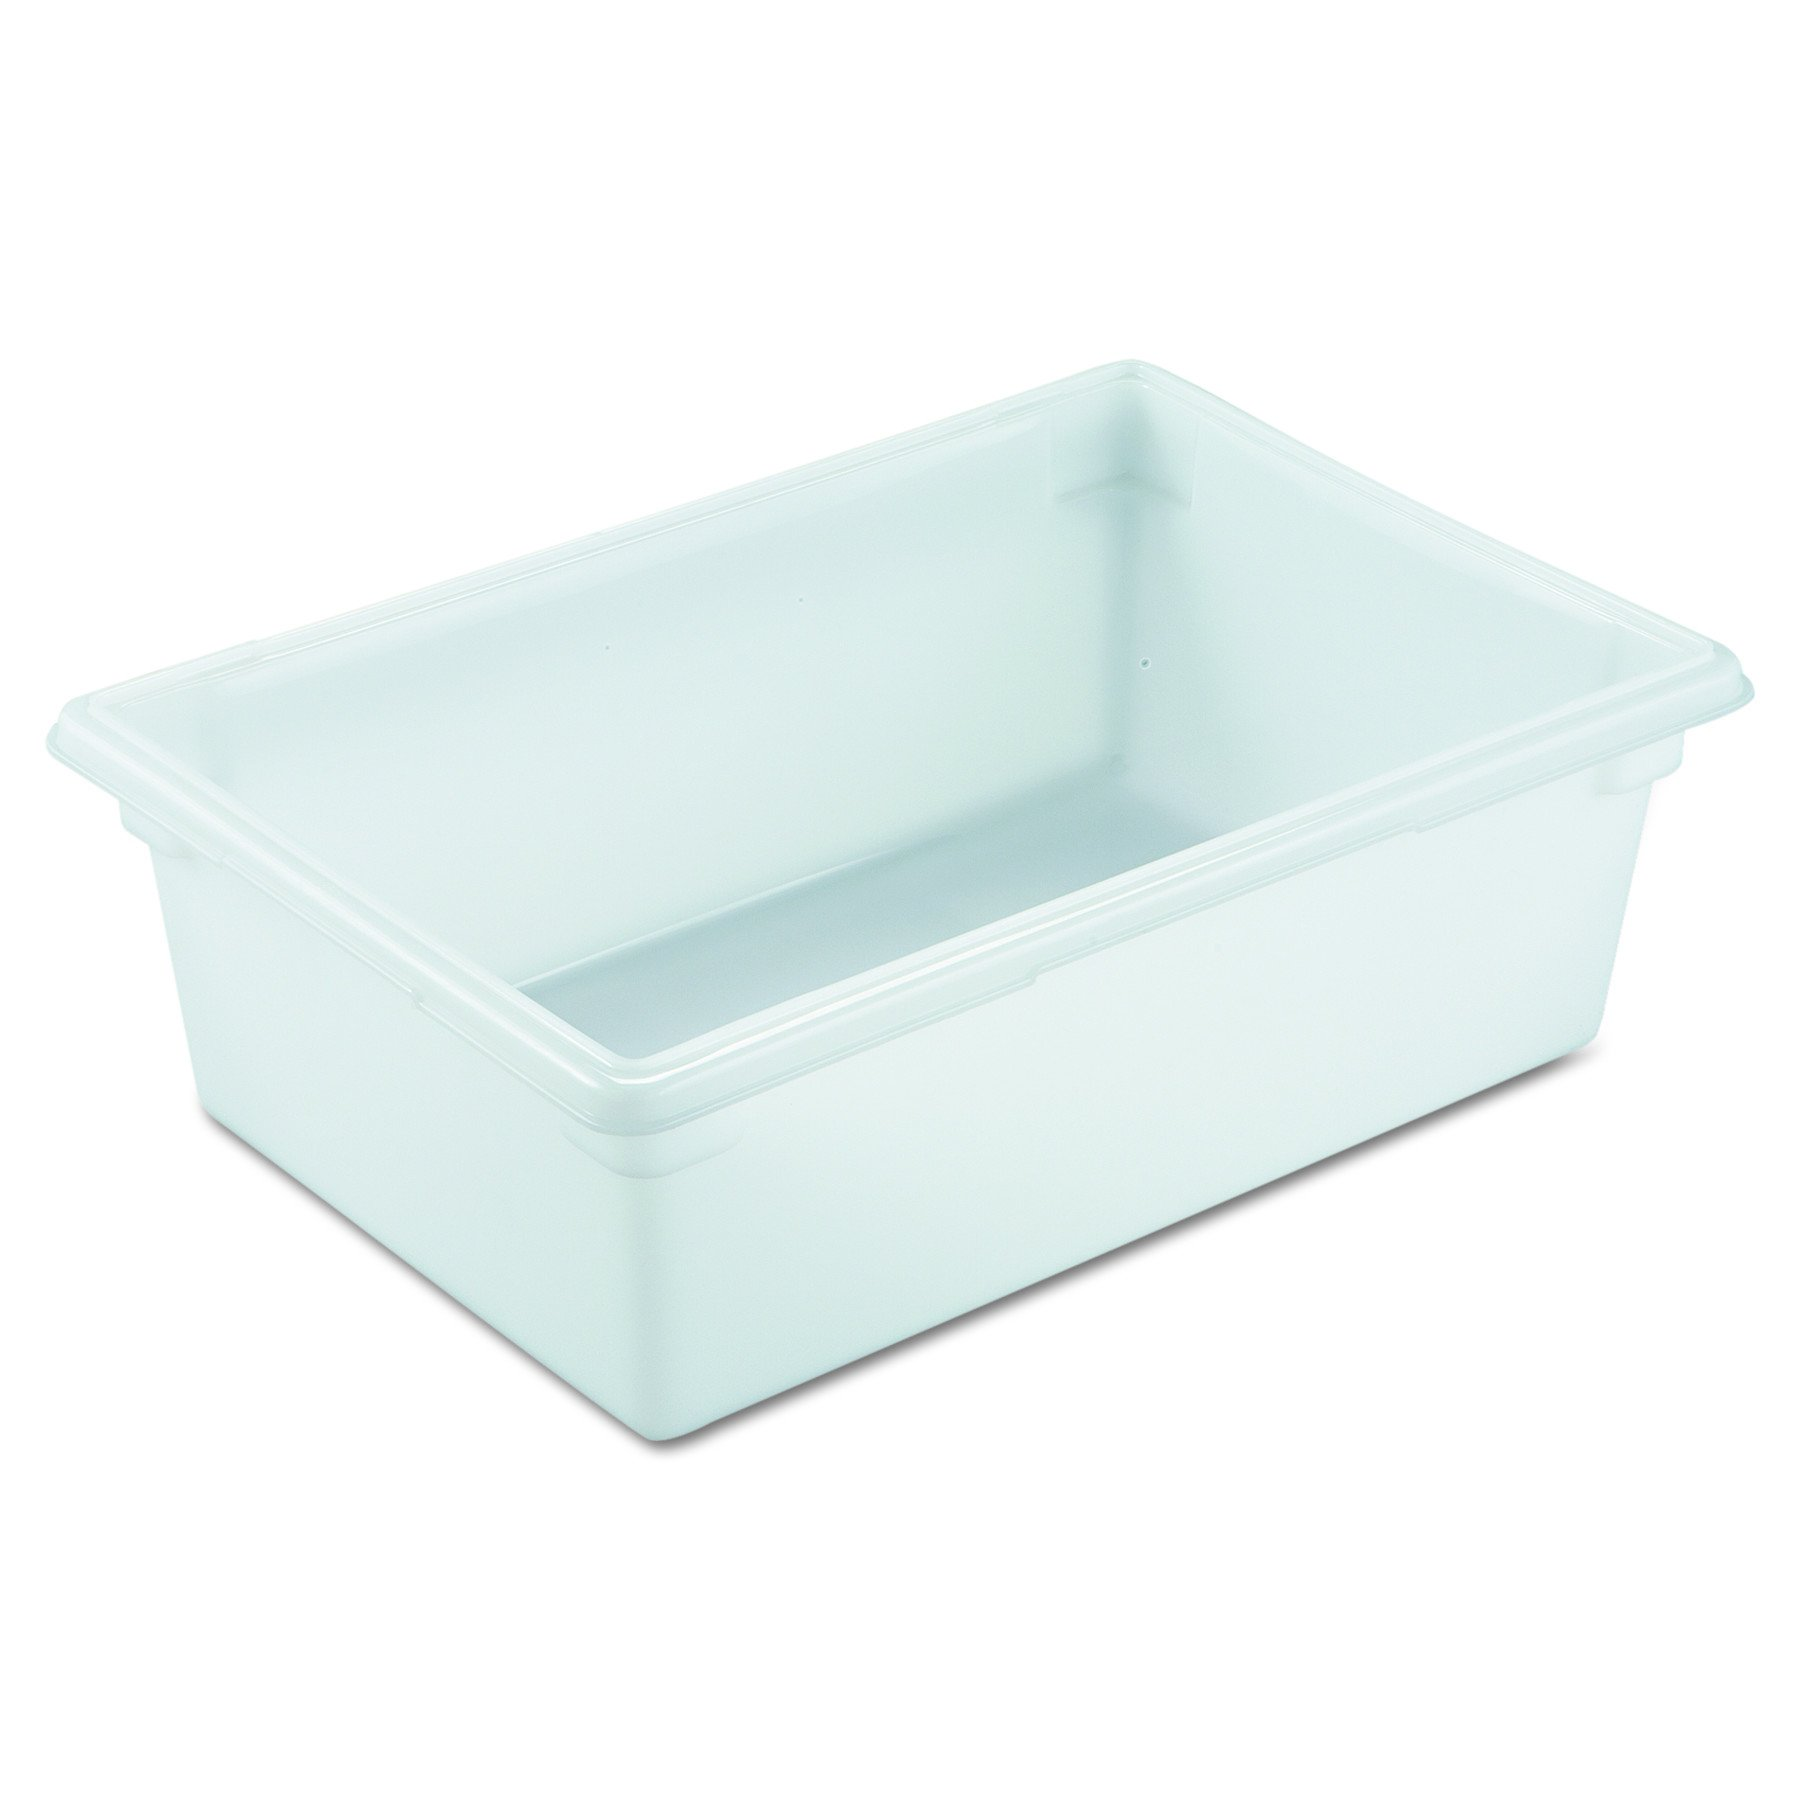 Rubbermaid Commercial 3500WHI Food/Tote Boxes, 12.5gal, 26w x 18d x 9h, White